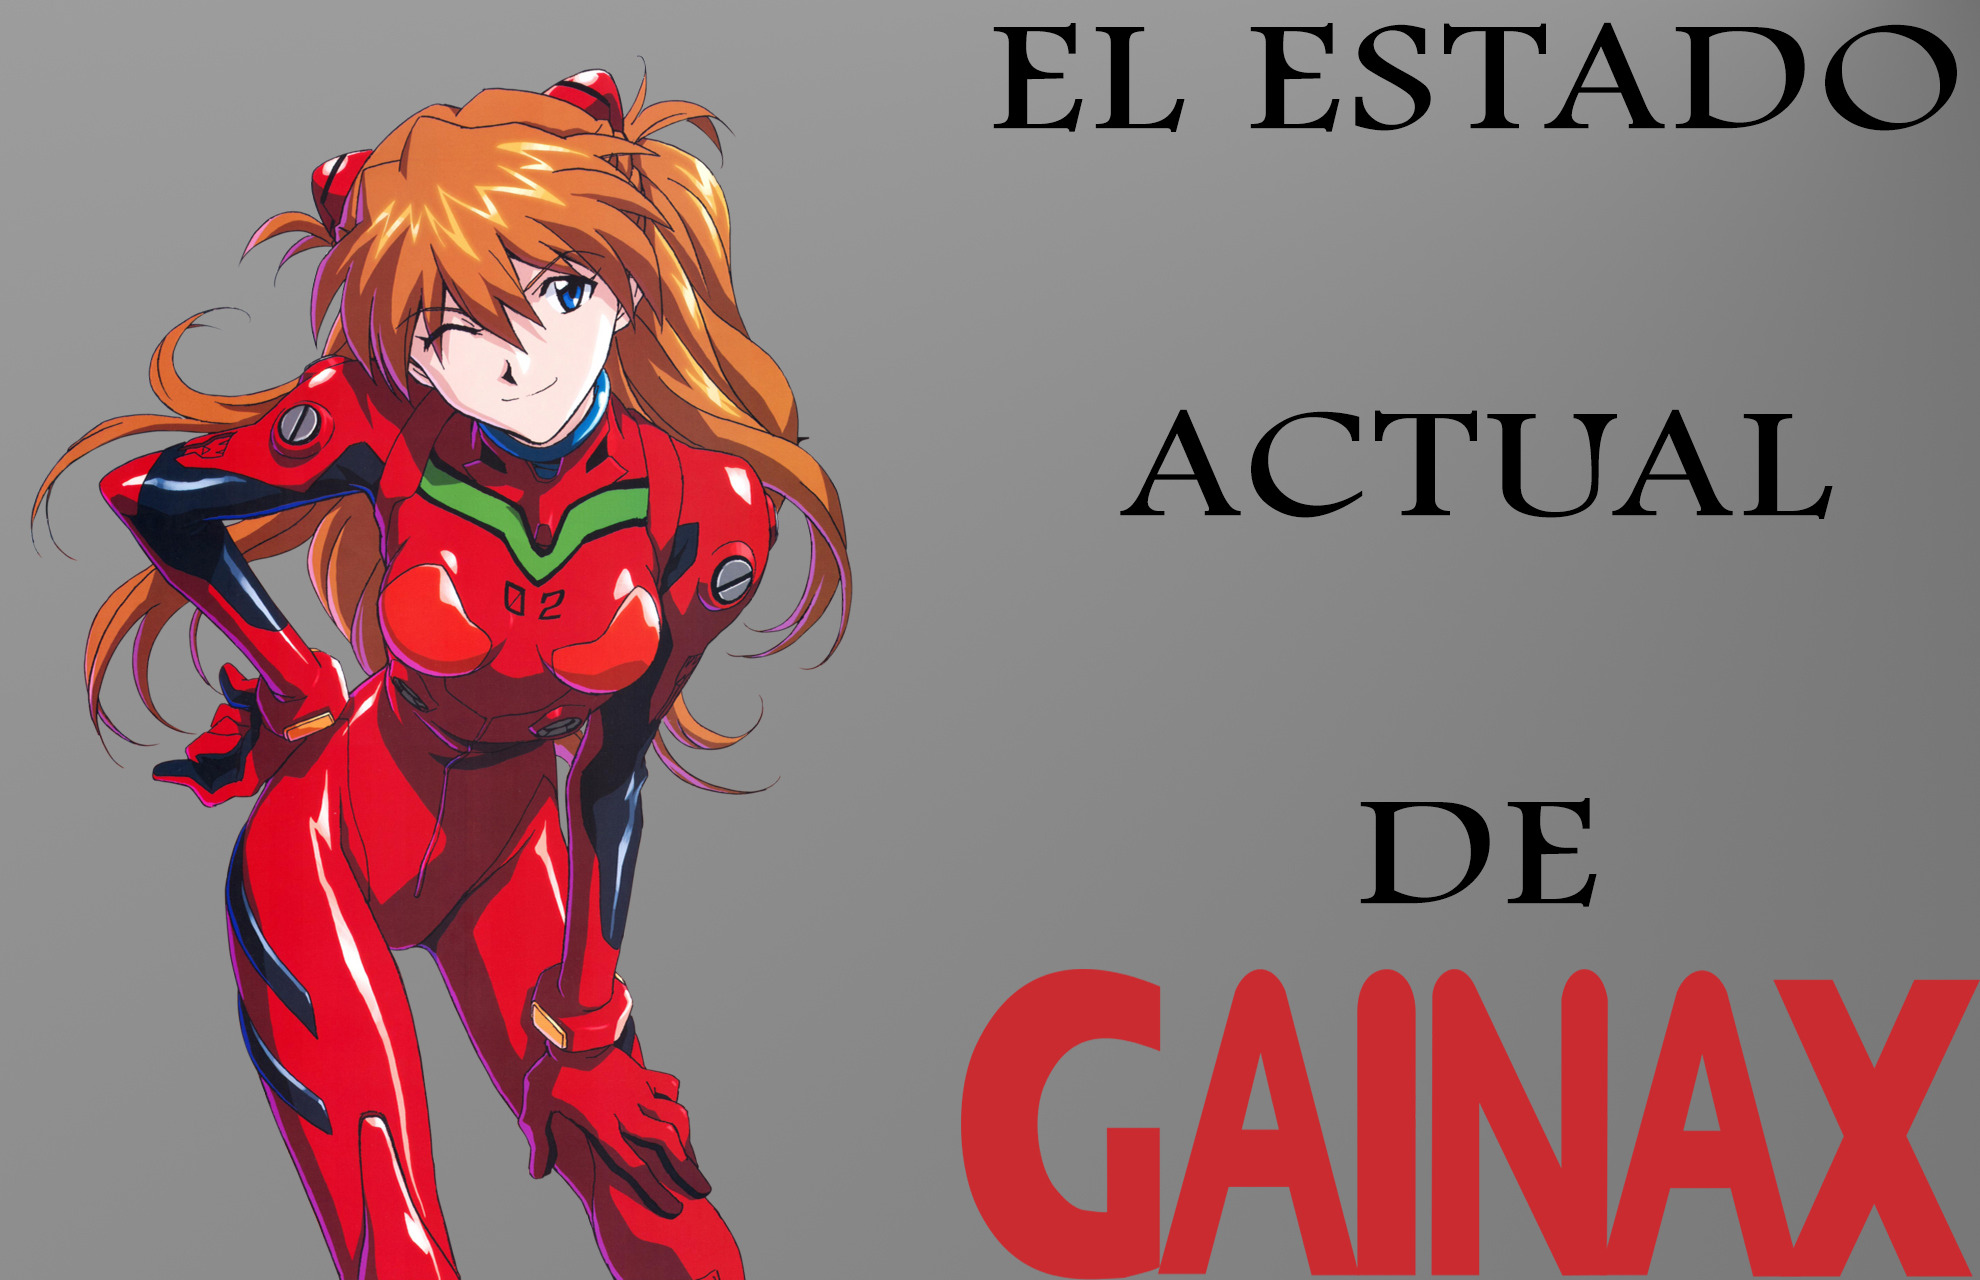 El estado actual de gainax